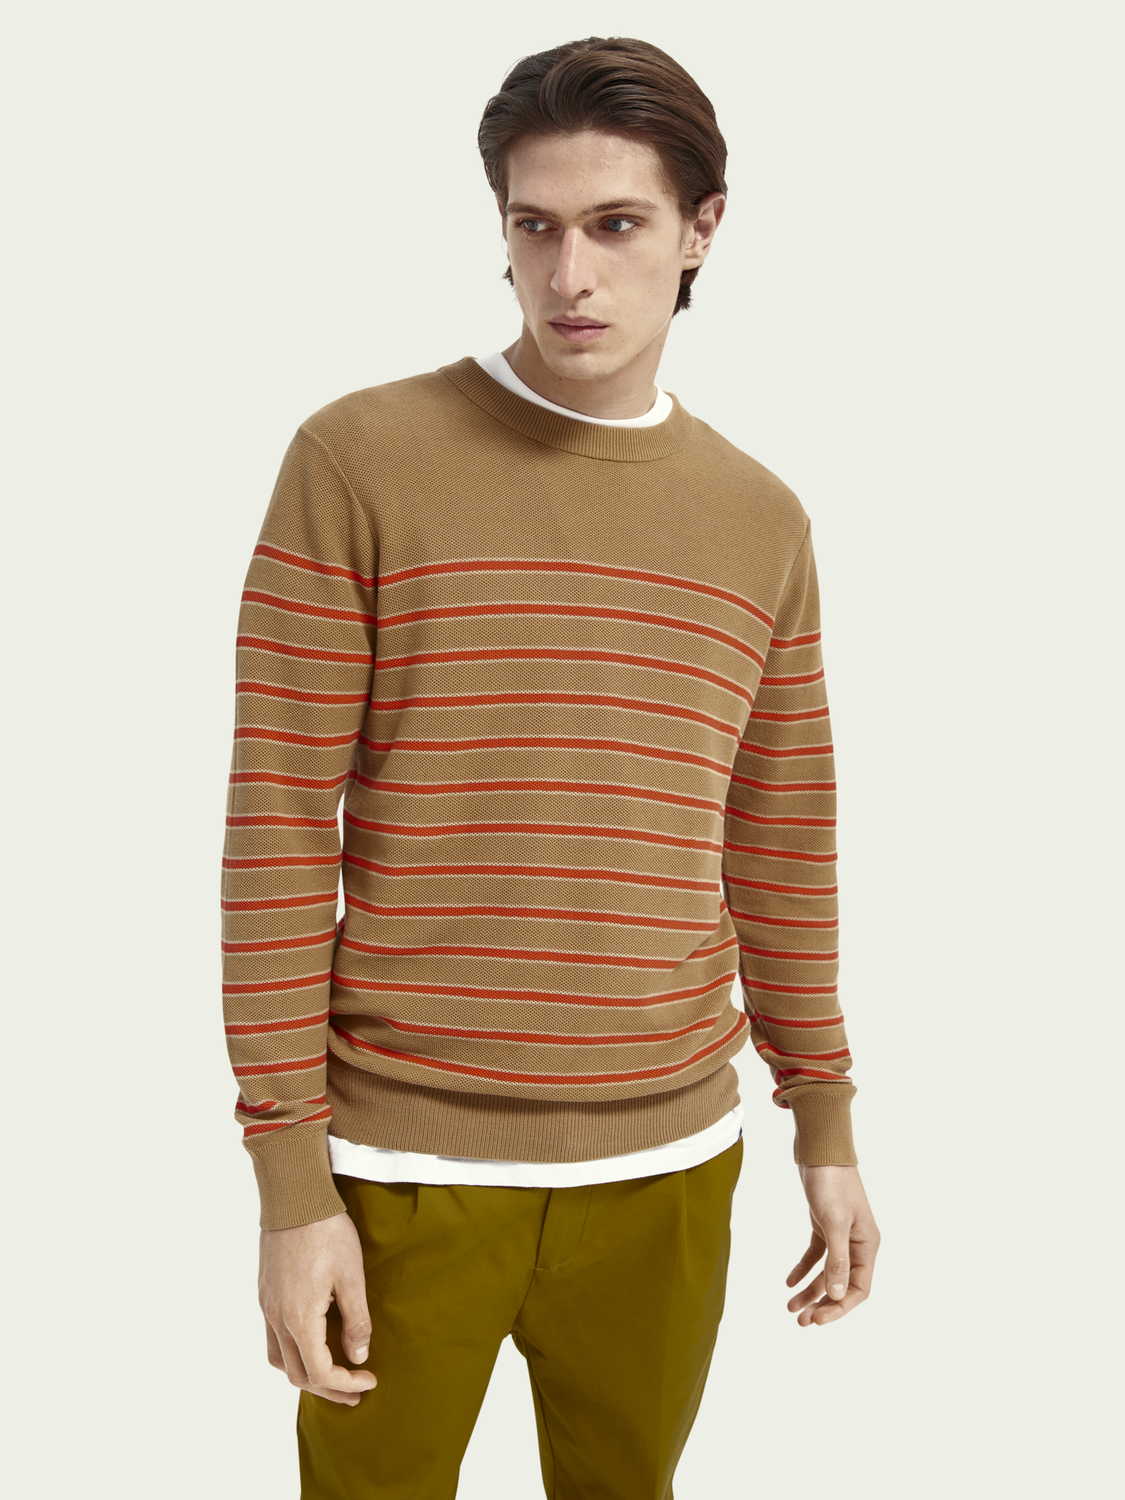 Men crewneck structured knit sweater